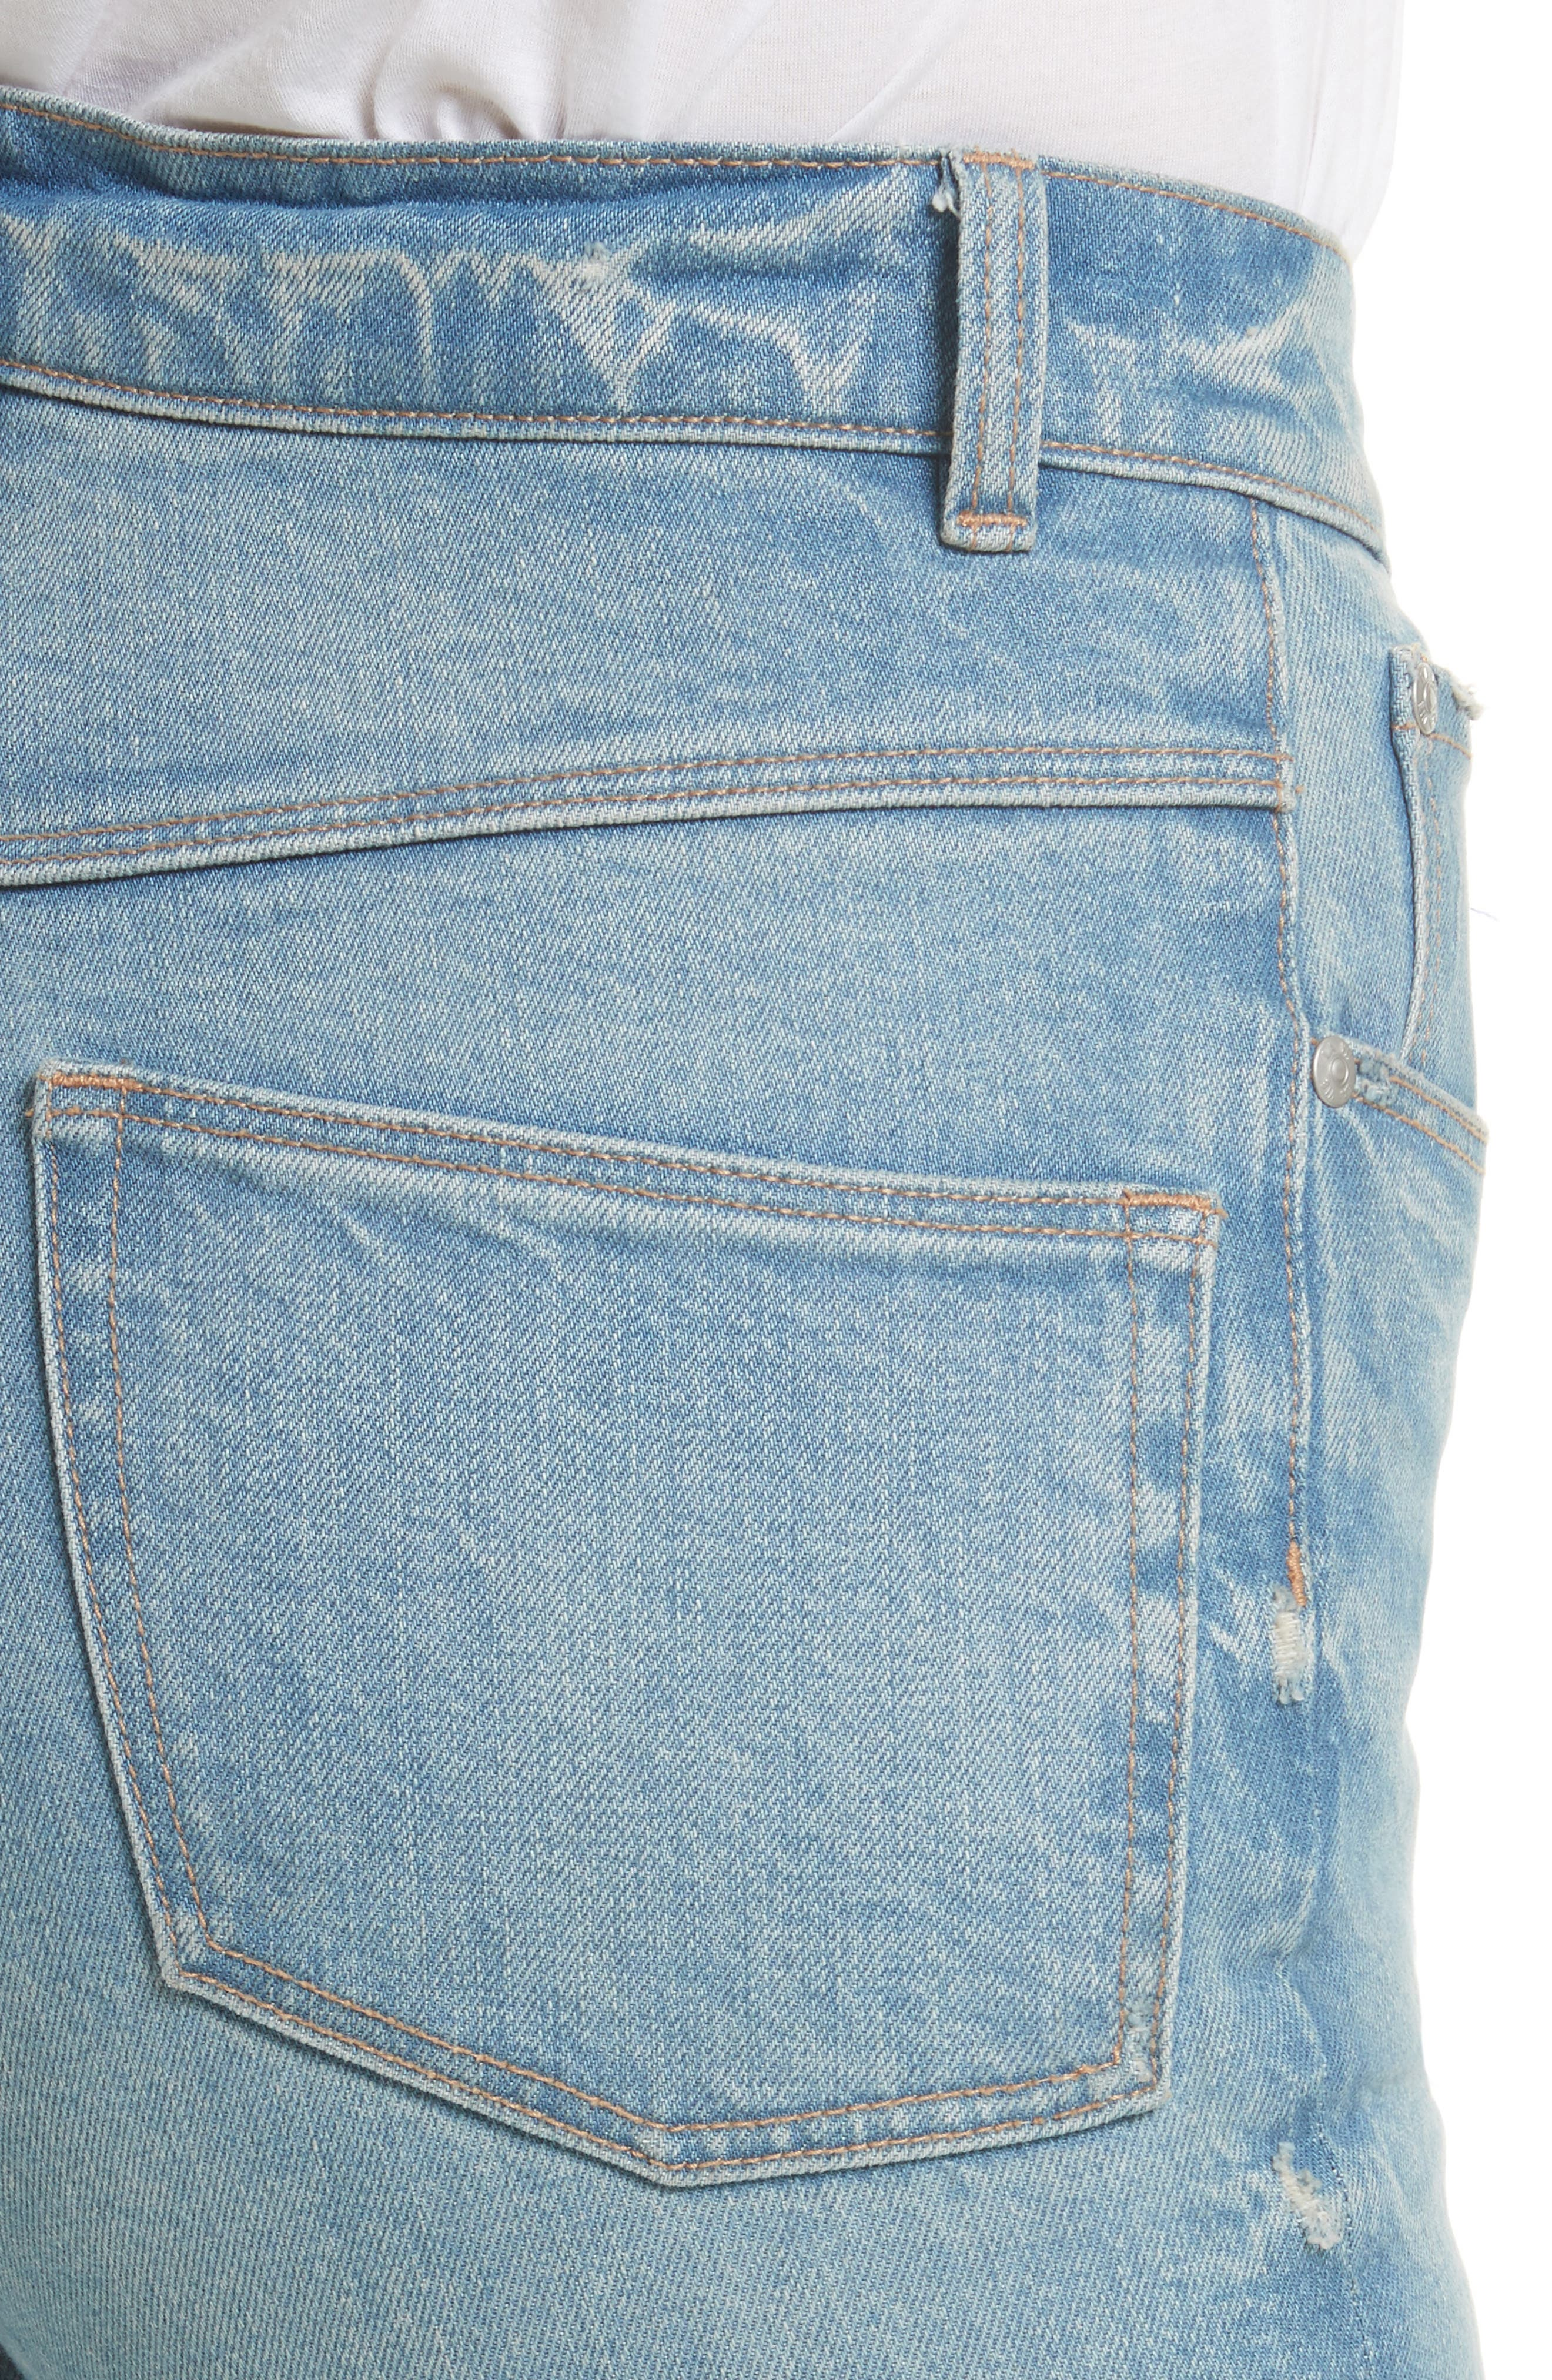 Ines High Waist Ankle Jeans,                             Alternate thumbnail 4, color,                             469